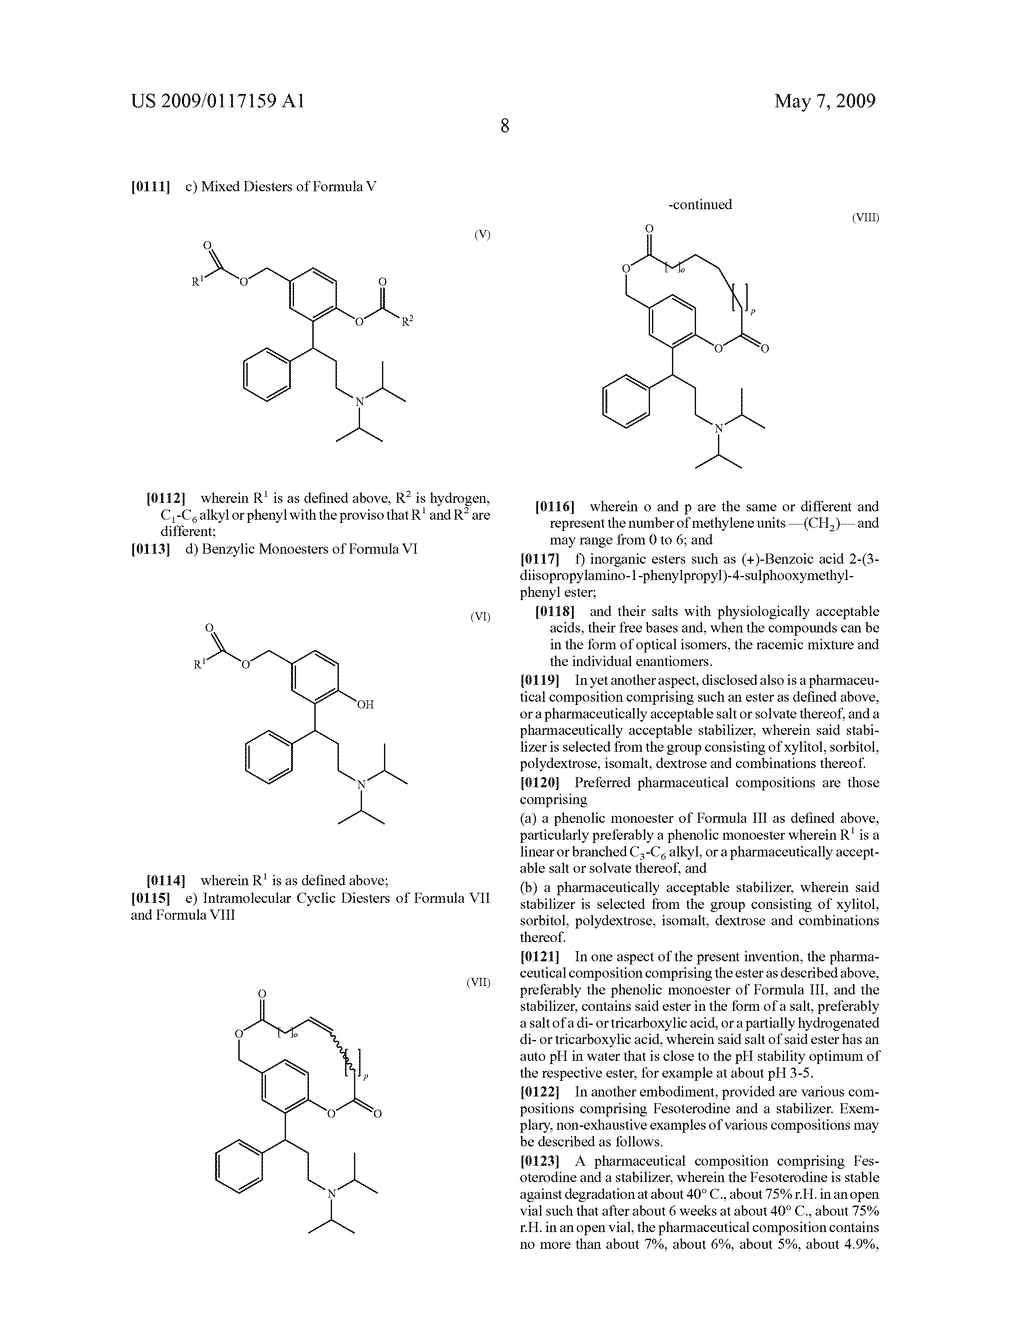 PHARMACEUTICAL COMPOSITIONS COMPRISING FESOTERODINE - diagram, schematic, and image 18